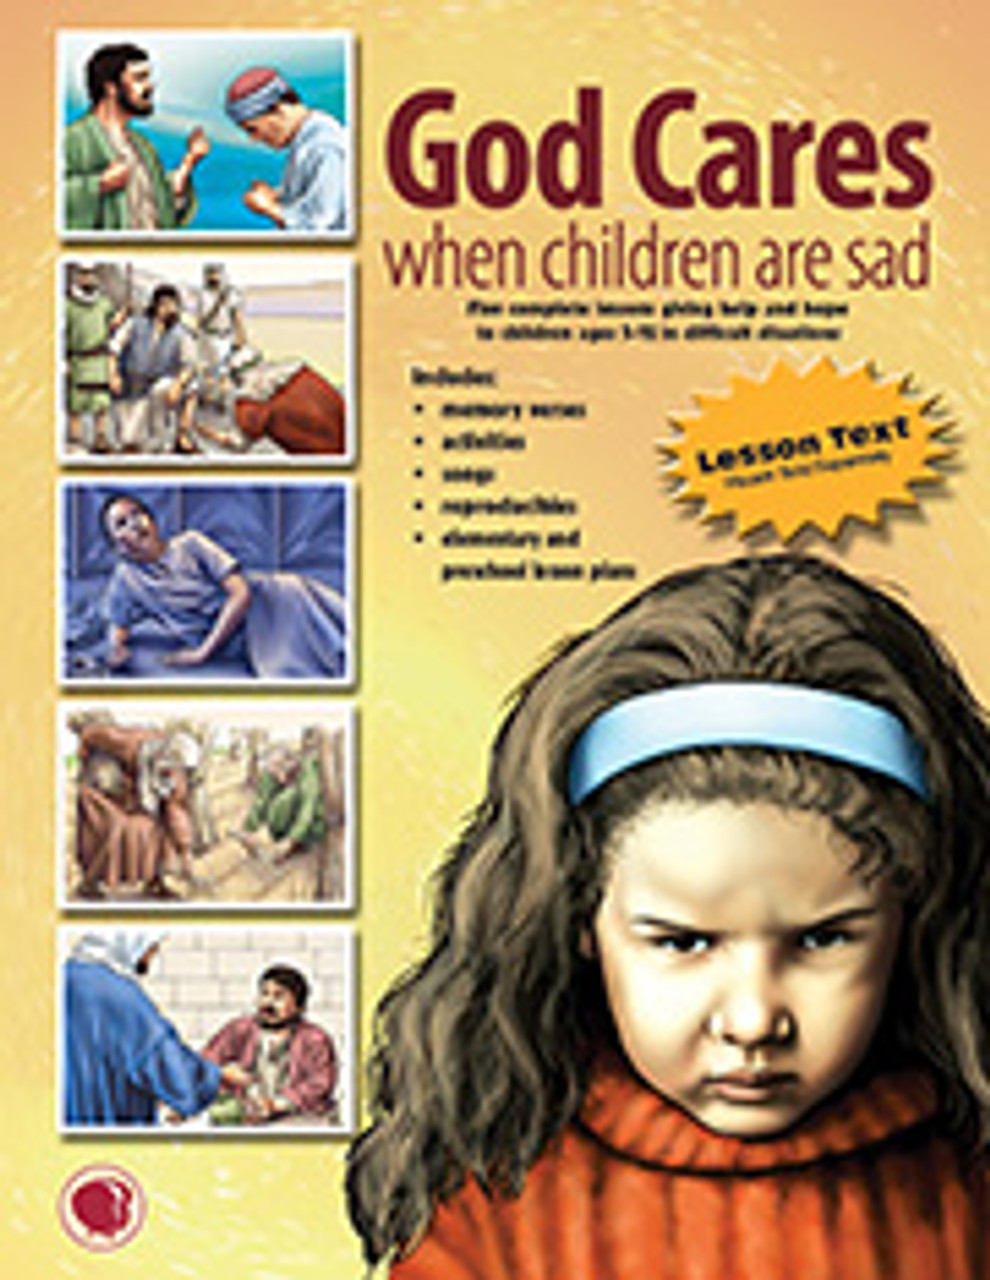 God Cares When Children are Sad (flashcards)